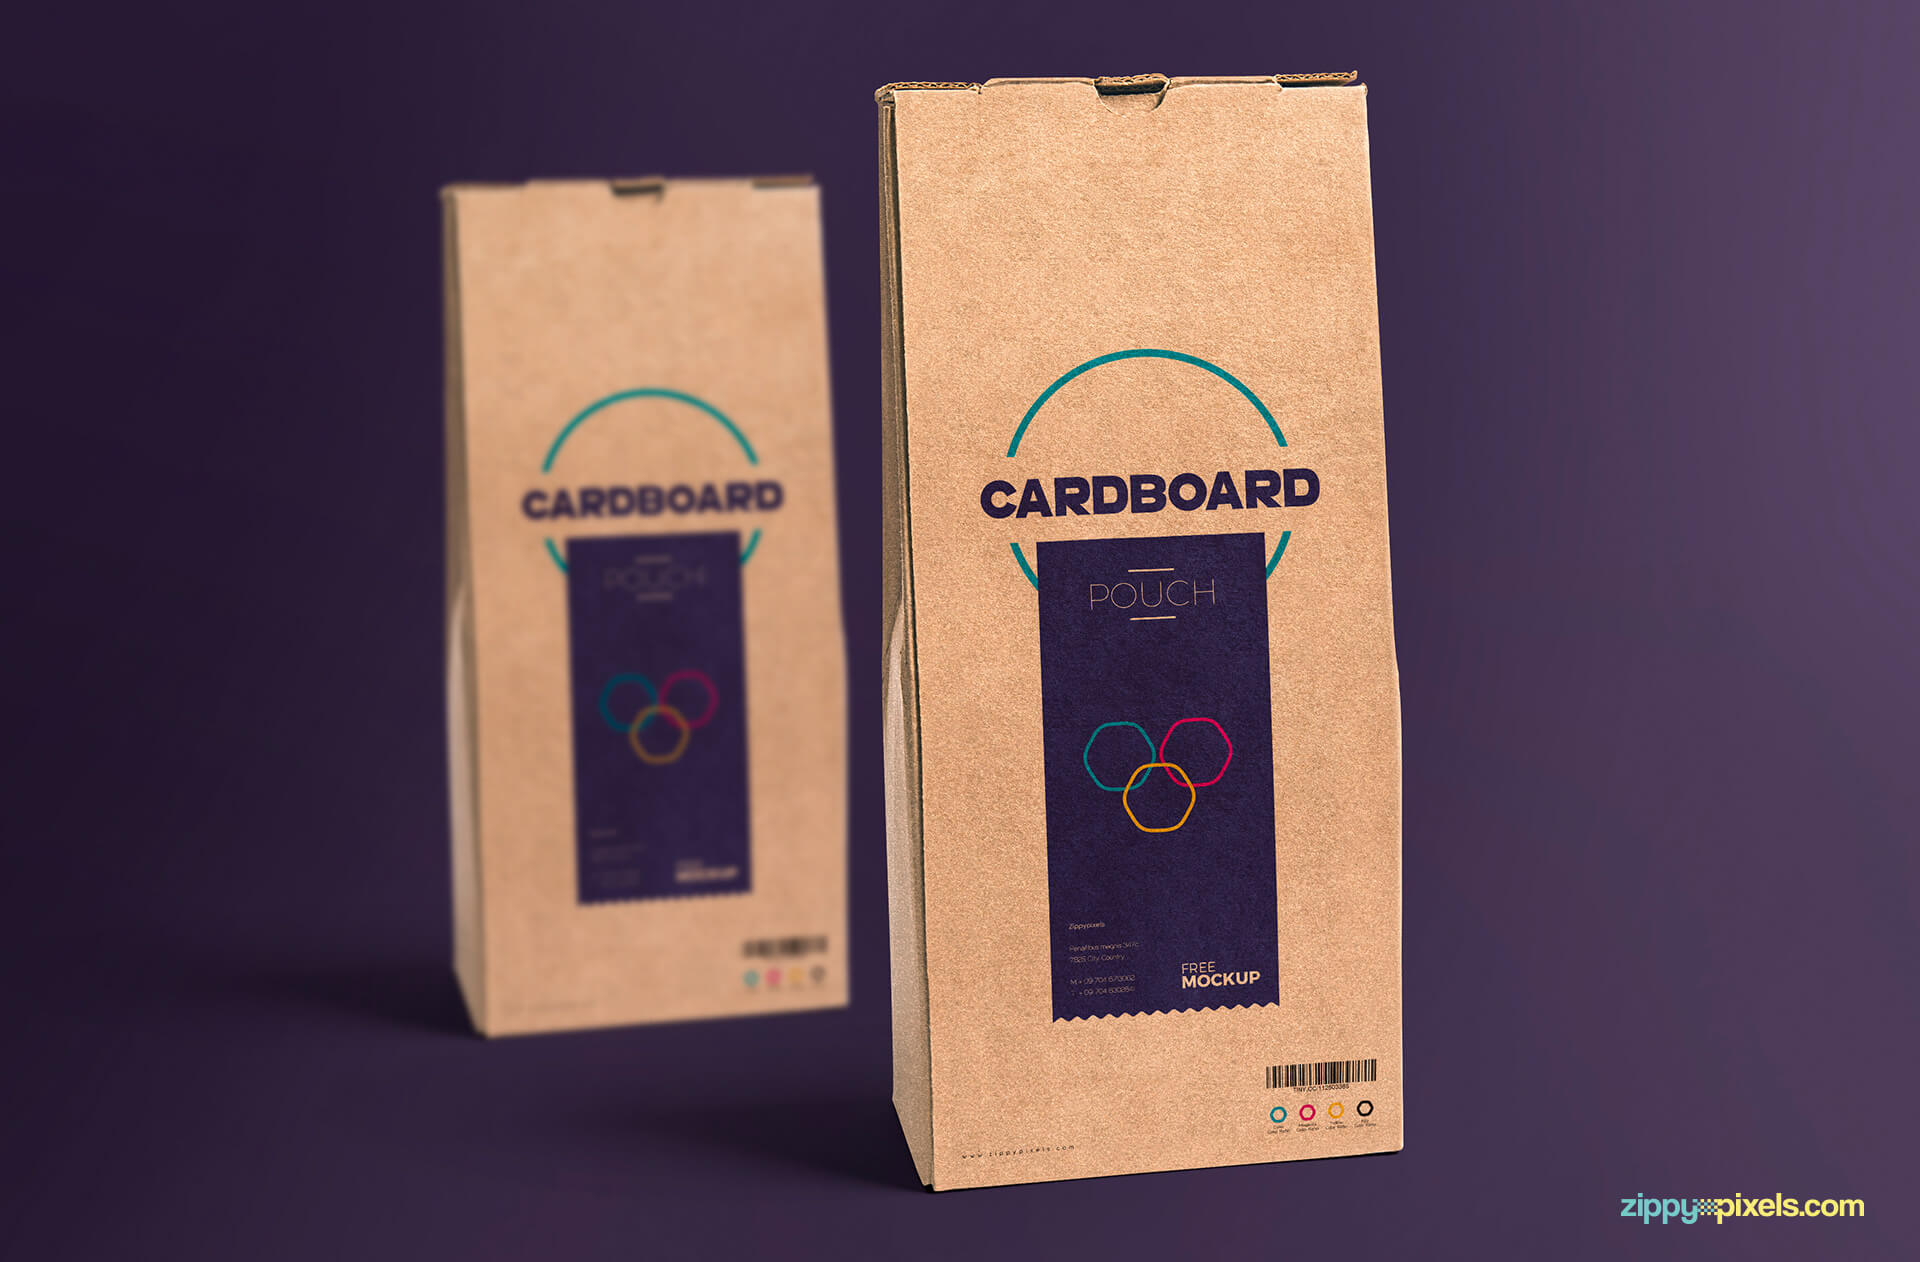 Free Cardboard Pouch Packaging Mockup PSD Template2 (1)